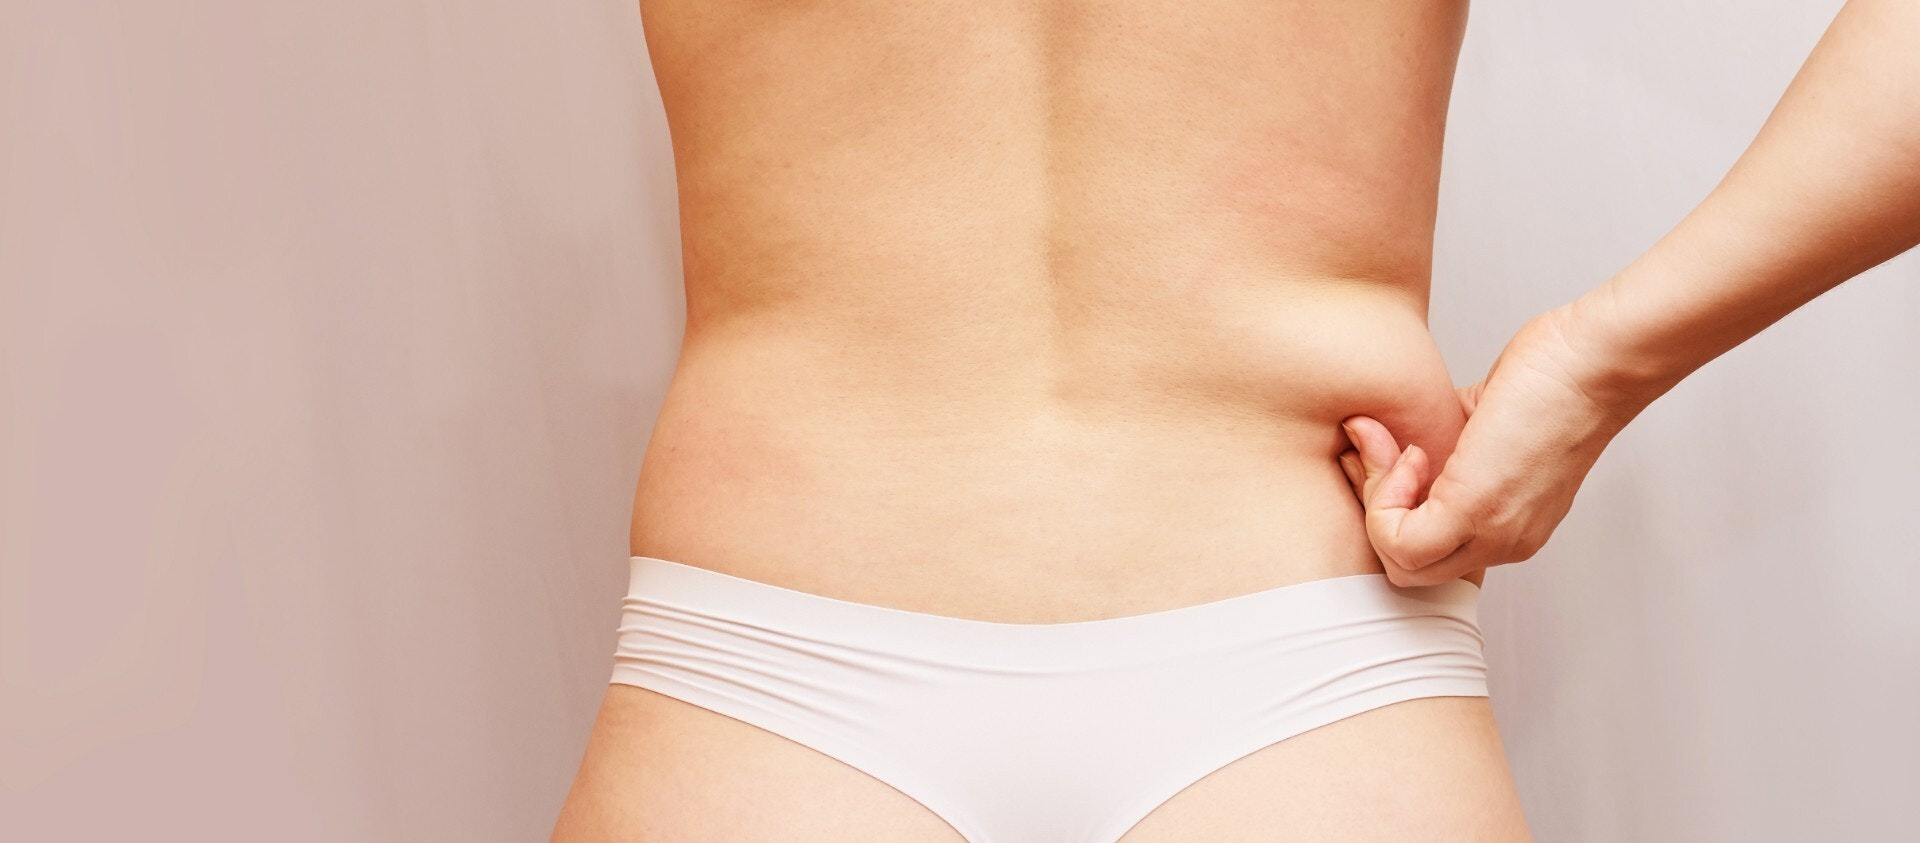 6 Things To Consider Before Getting Stomach Liposuction in Los Angeles